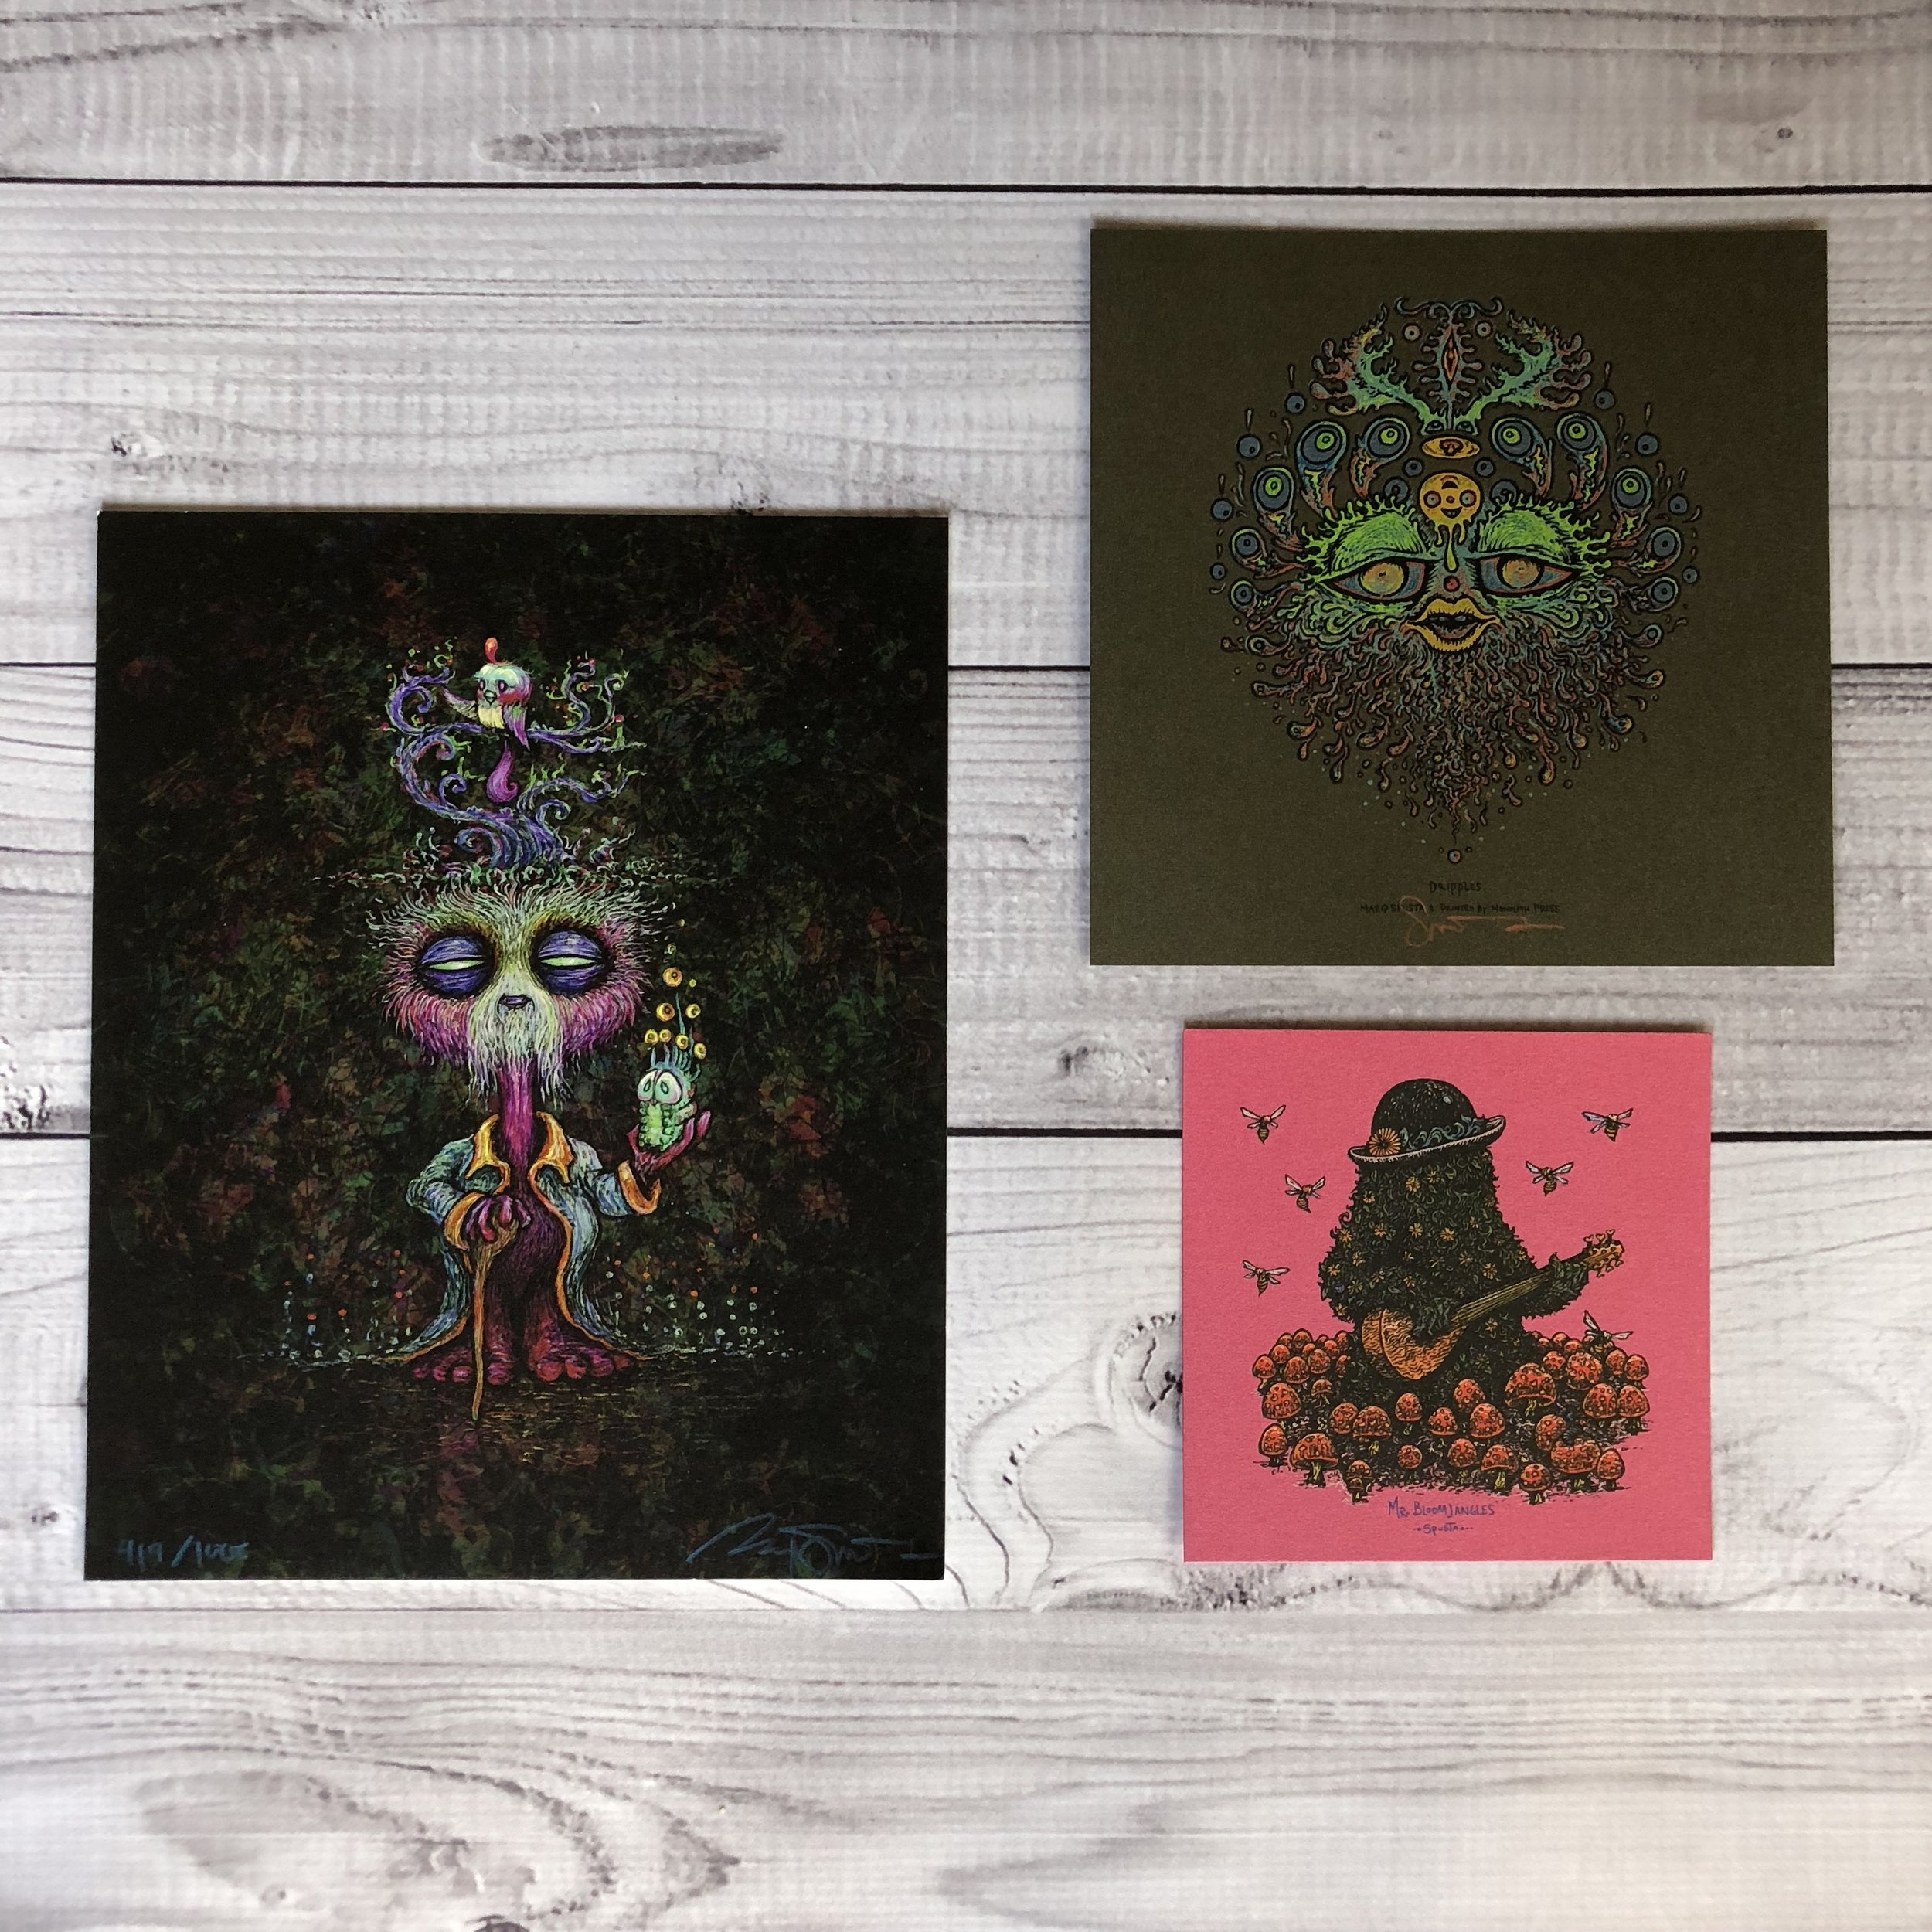 """$100 PACK 1 Includes The Wuz Is (8"""" x 10""""), Dripples (7"""" x 7"""") and Mr. Bloomjangles (5"""" x 5"""")"""